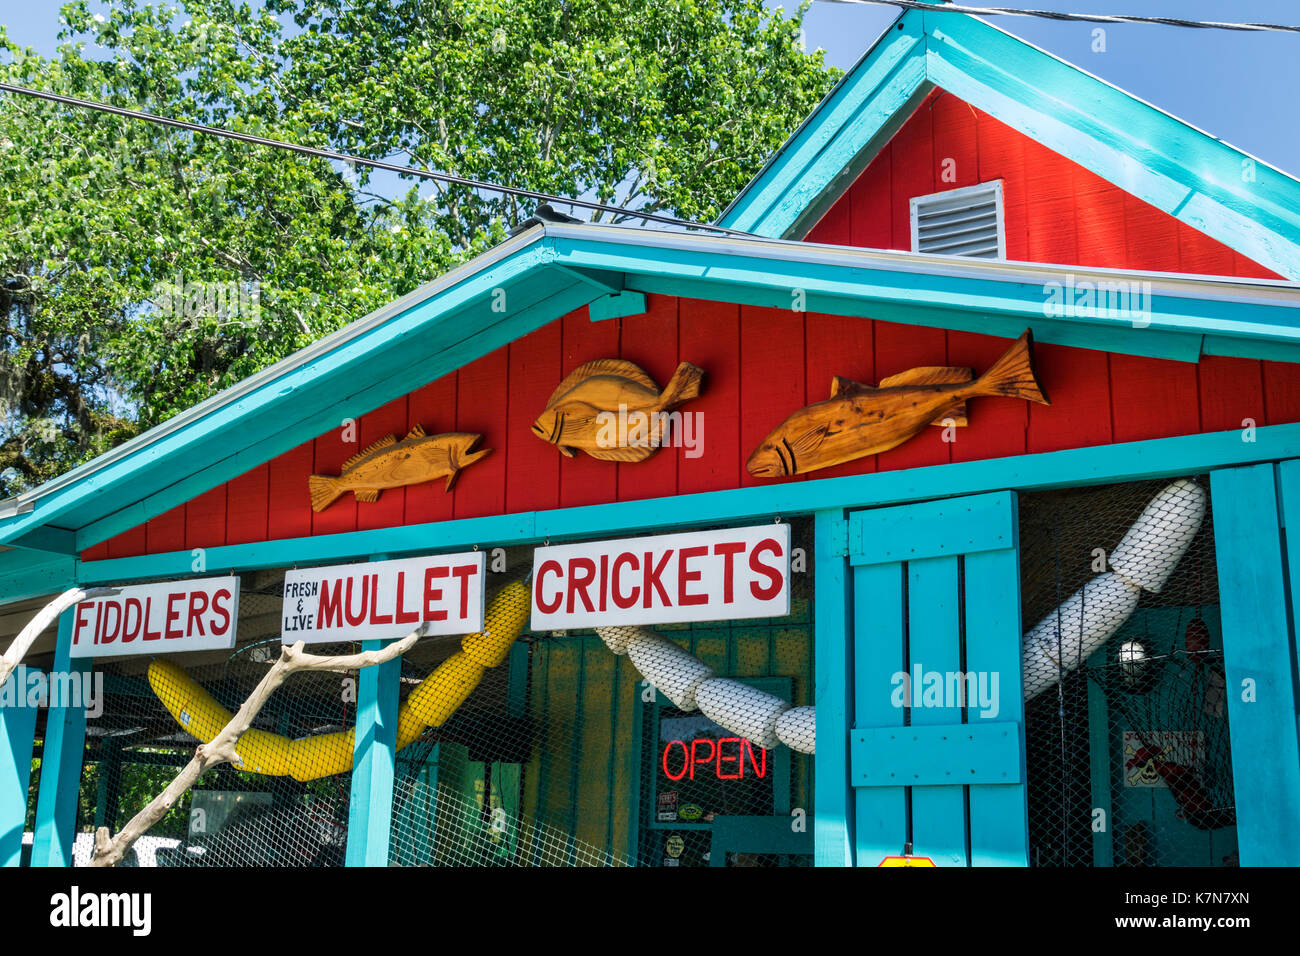 South Carolina SC Garden City Beach Perry's Bait & Tackle fishing store shopping exterior sign front mullet crickets fiddlers - Stock Image